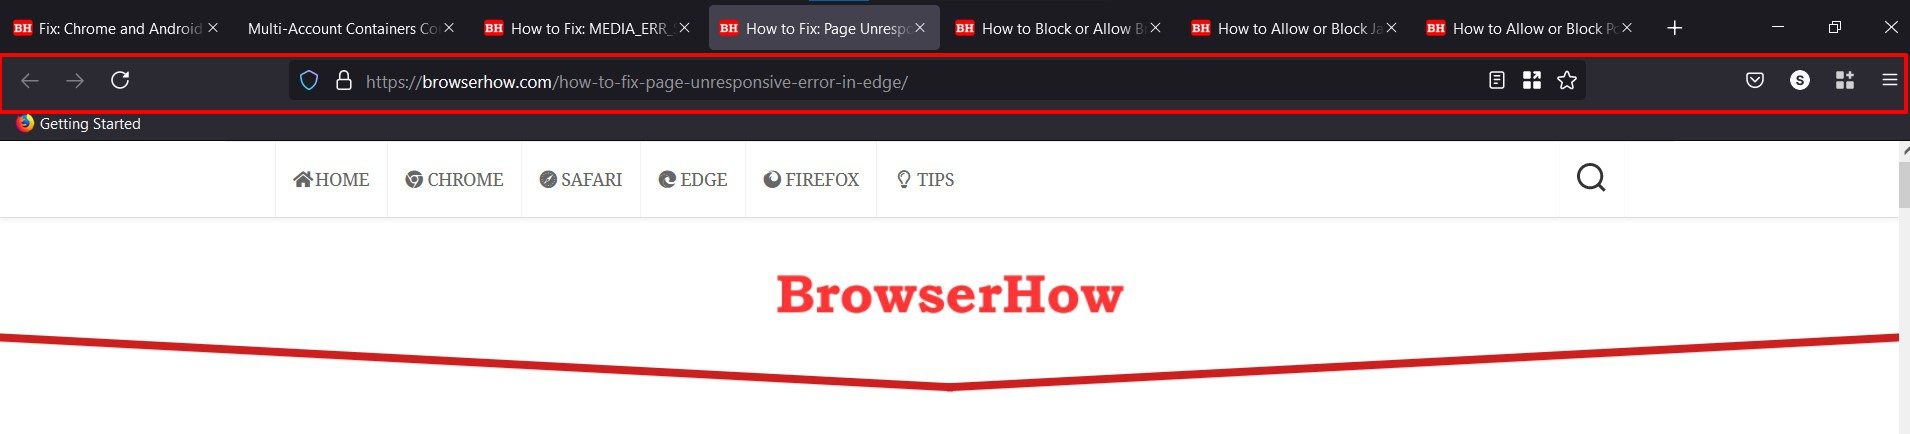 Firefox redesigned address bar and tool bar